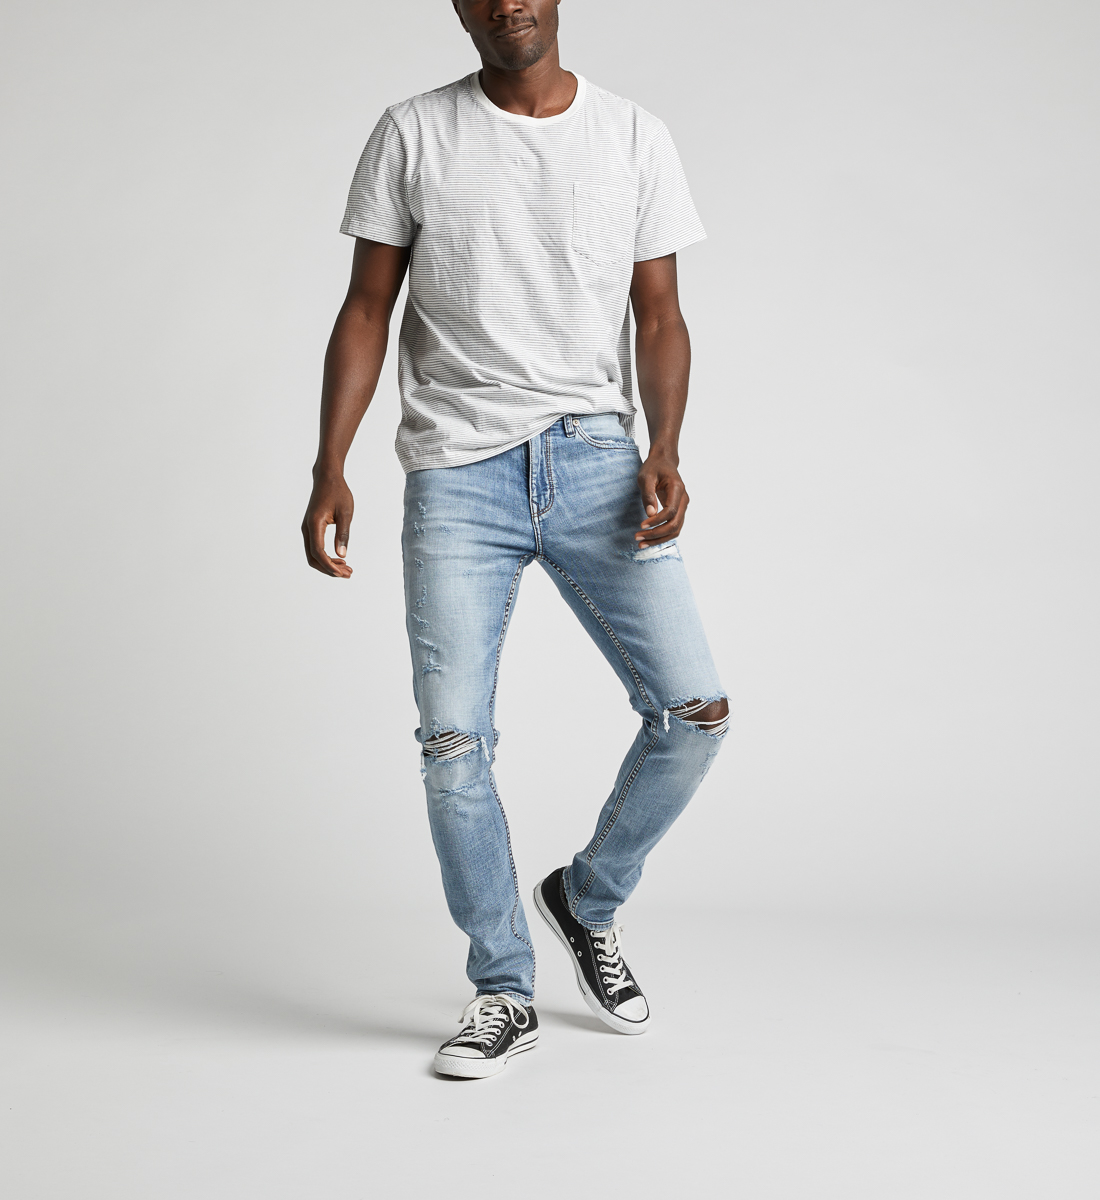 Kenaston Slim Jeans Front